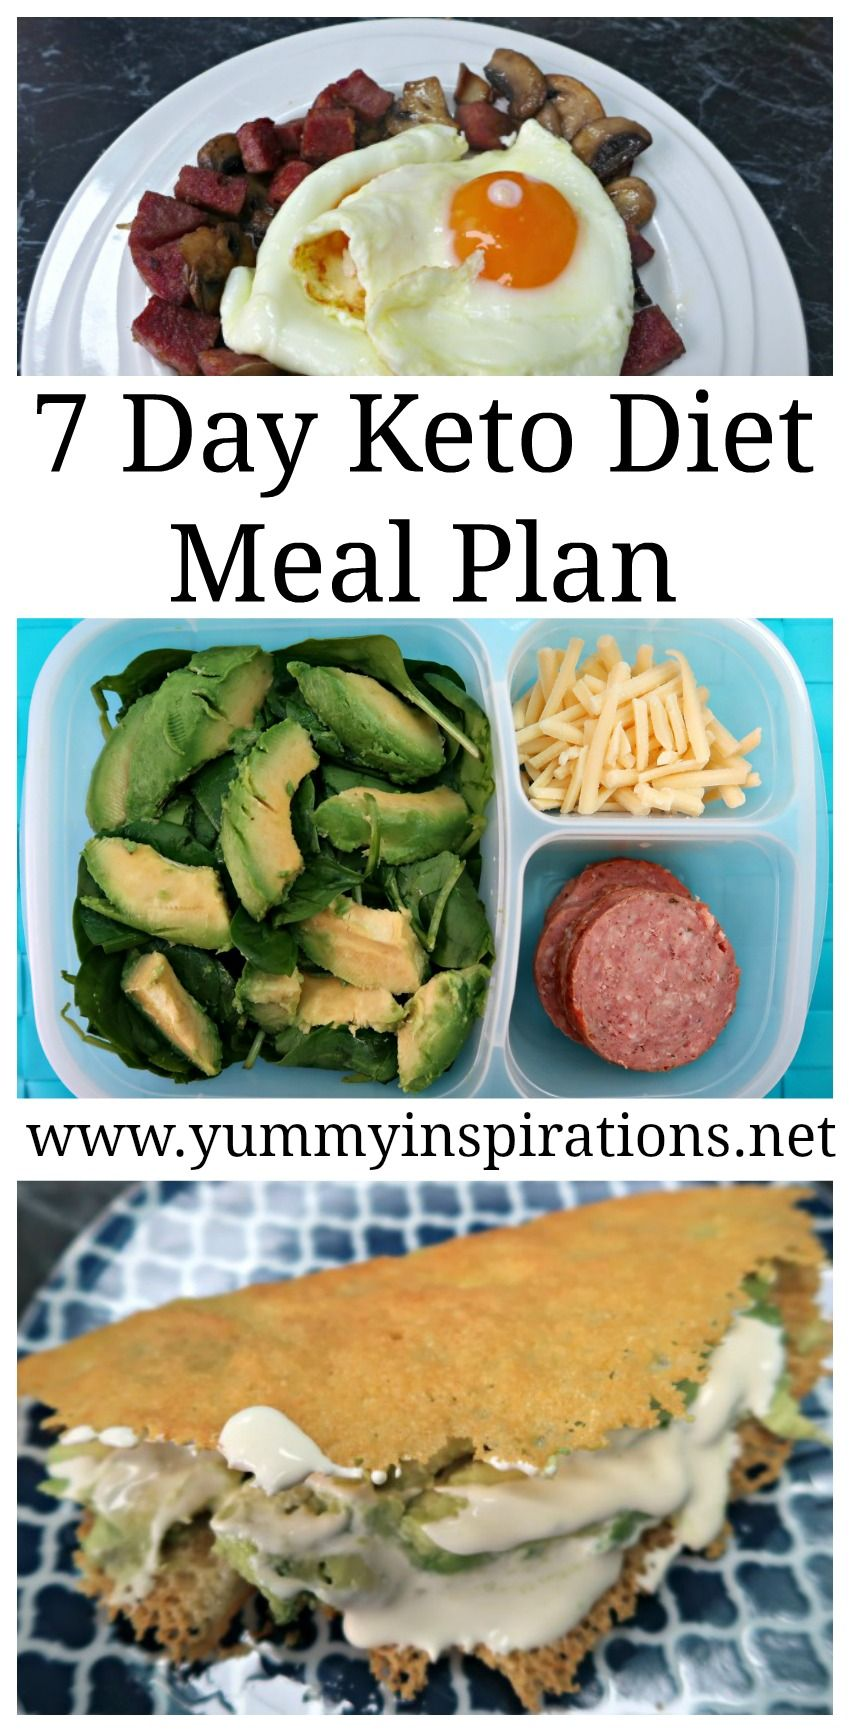 7 Day Keto Diet Meal Plan Menu For Weight Loss - Ketogenic Foods #ketomealplan